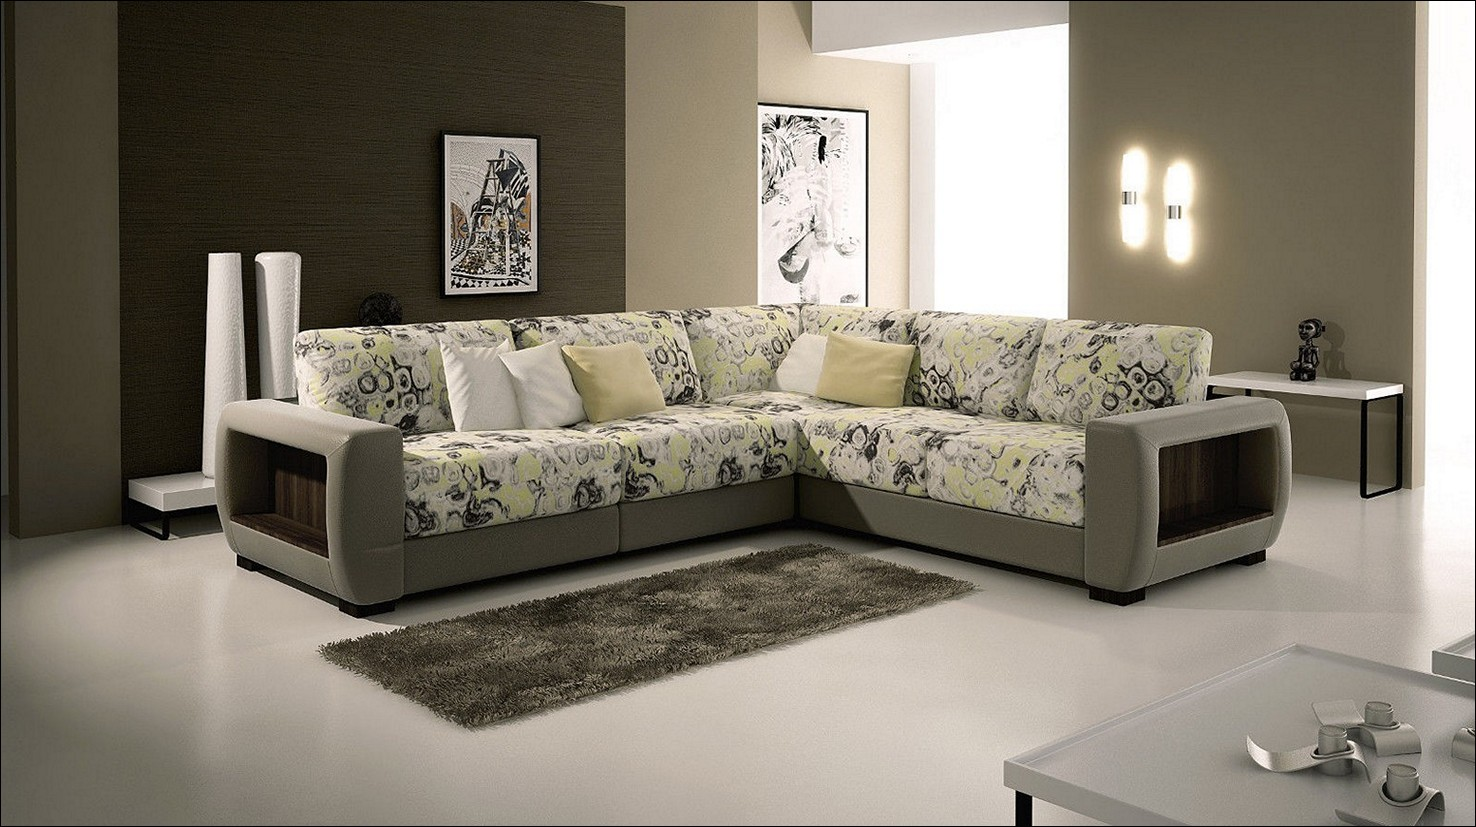 Living Room Decoration Images Wallpapers For Living Room Design Ideas In Uk